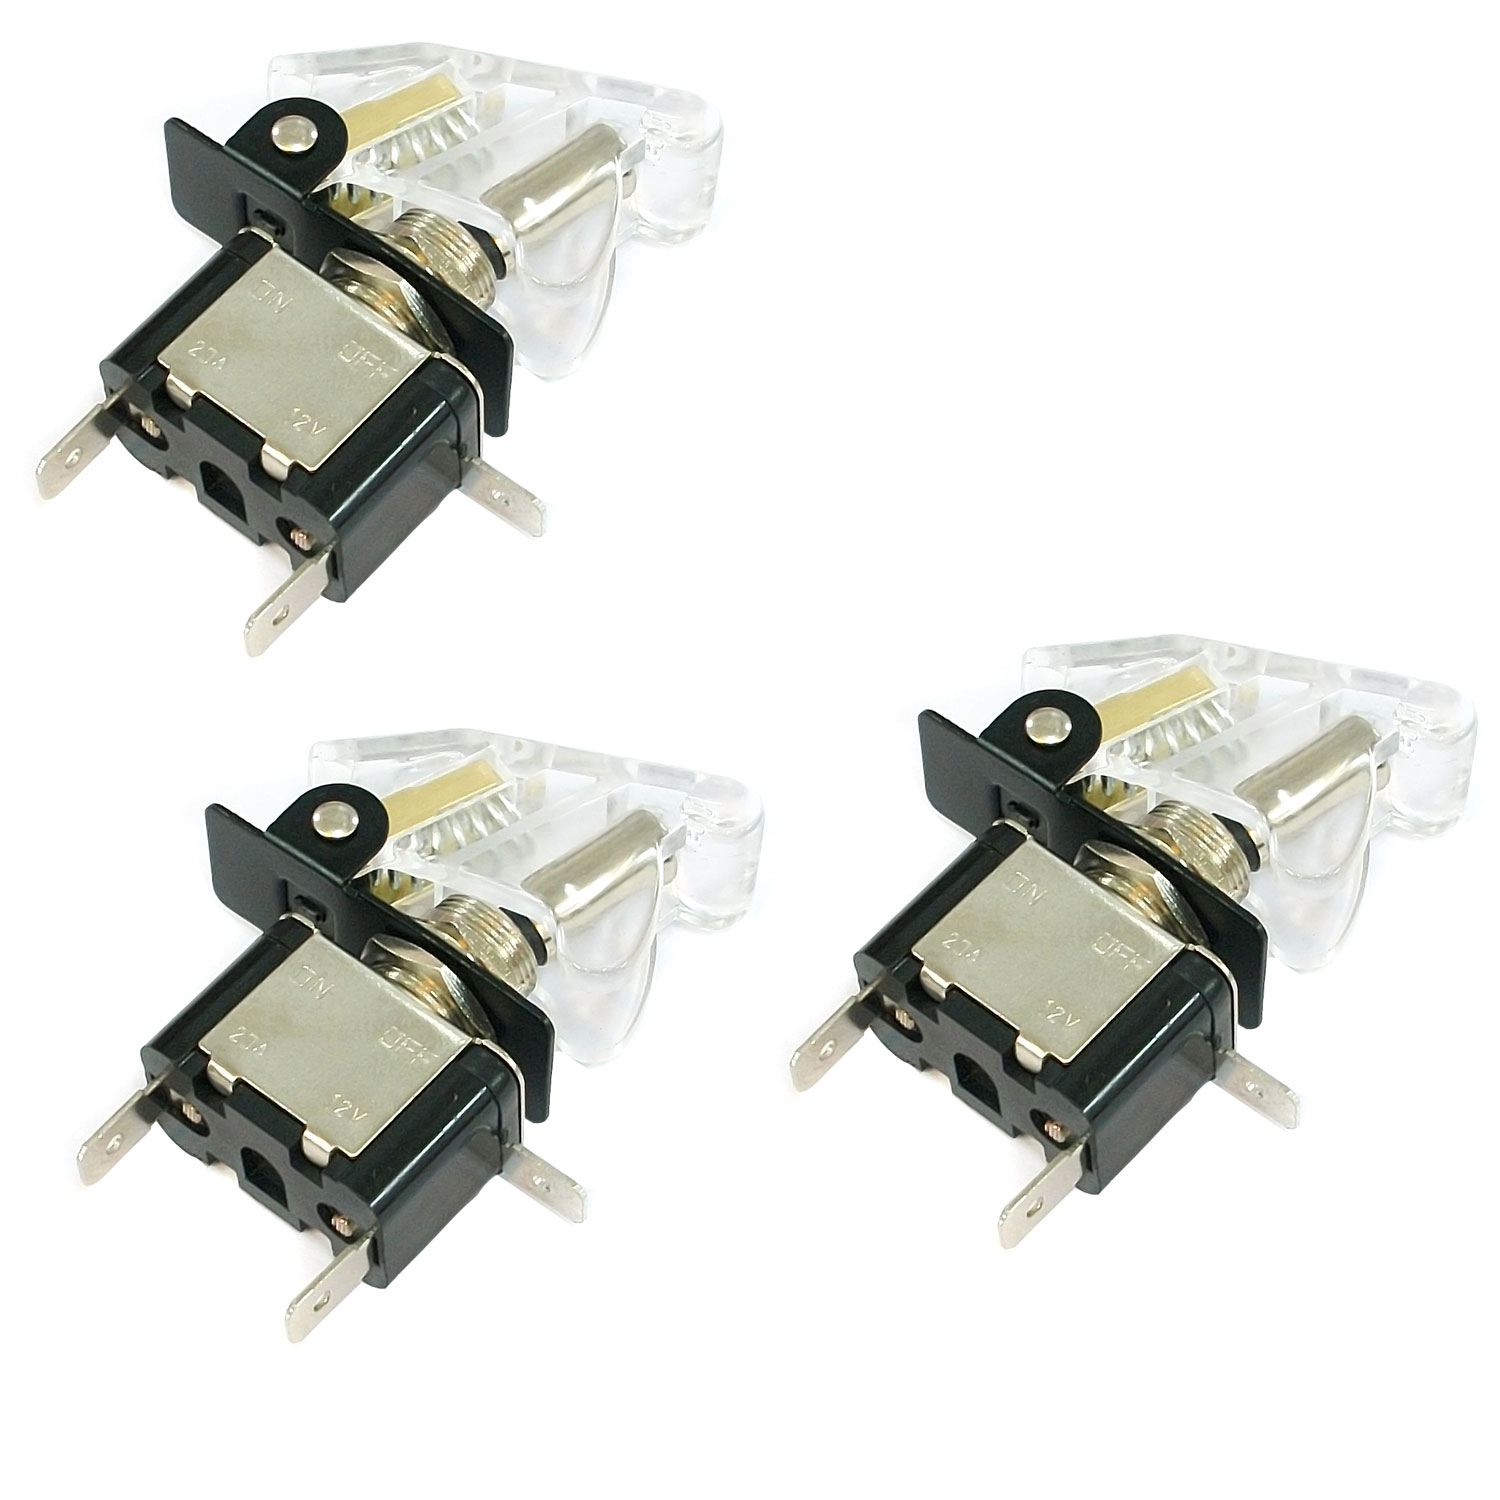 TrendBox 3 Sets Toggle Flick SPST Switch 12V 20A ON//OFF Control Car Truck Boat ATV Airplane AMBER LED Light + CLEAR Auto Cover